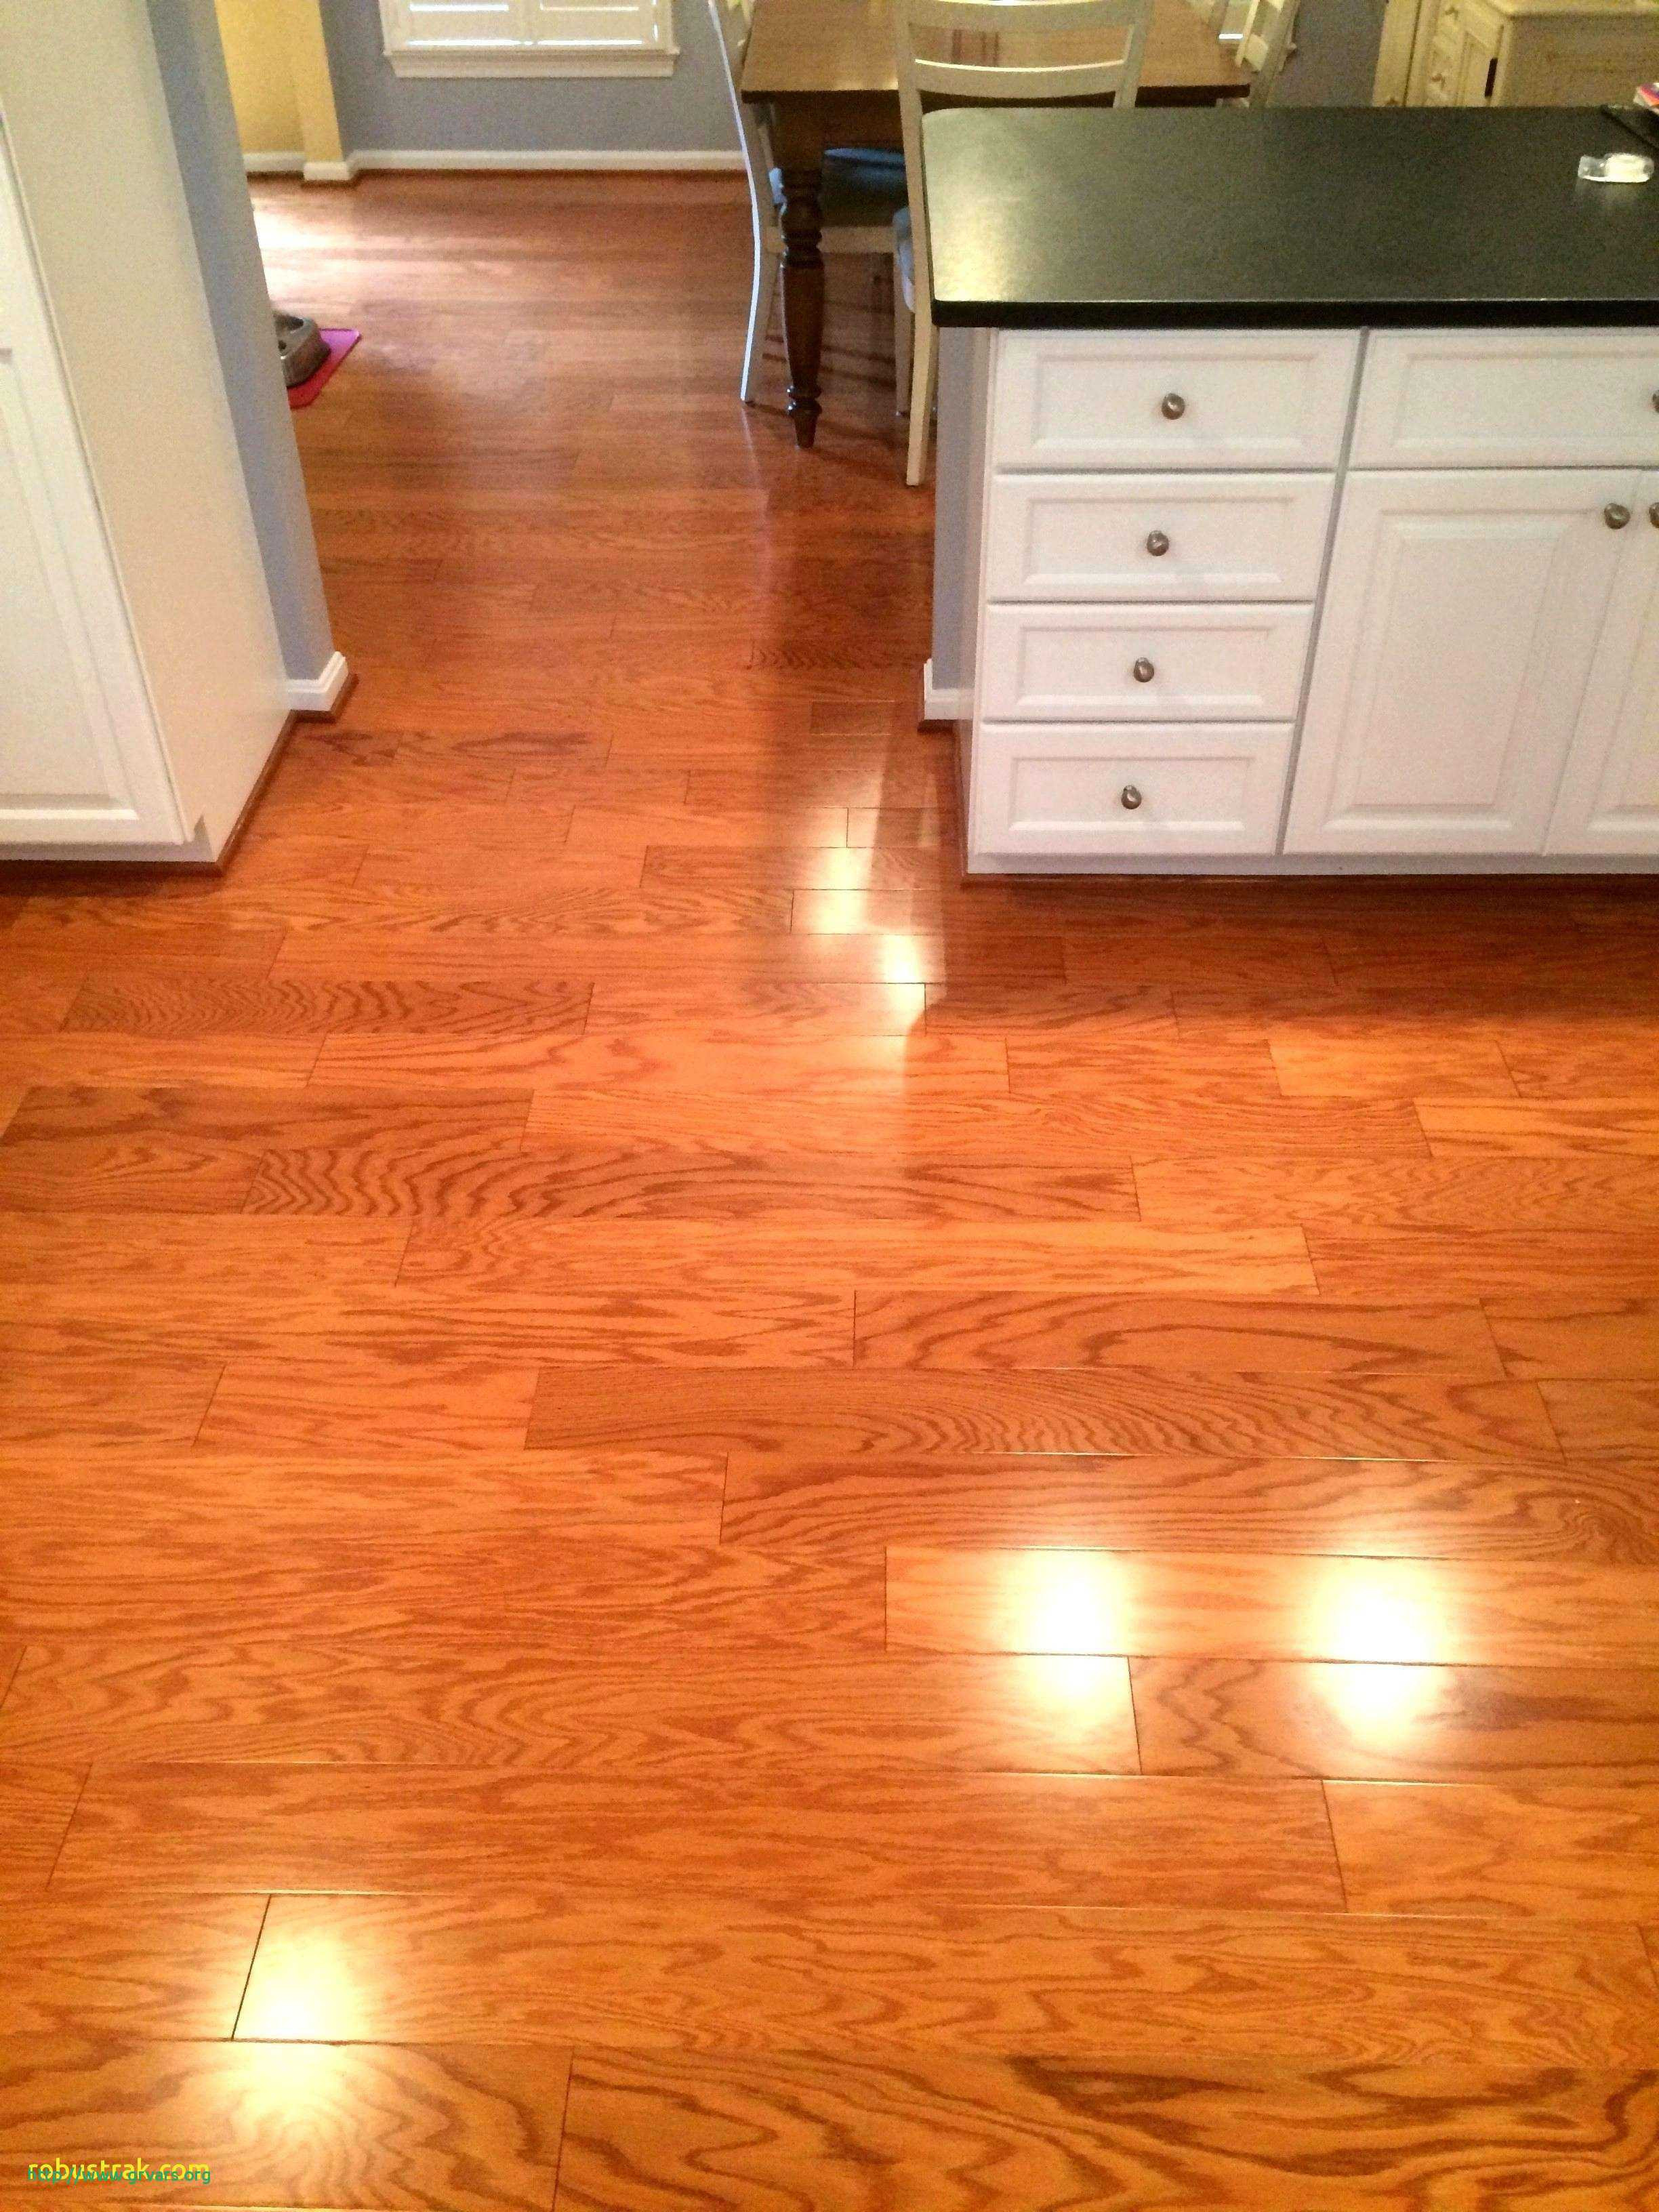 discount hardwood flooring calgary of 16 a‰lagant hardwood flooring depot calgary ideas blog regarding hardwood floors in the kitchen fresh where to buy hardwood flooring inspirational 0d grace place barnegat